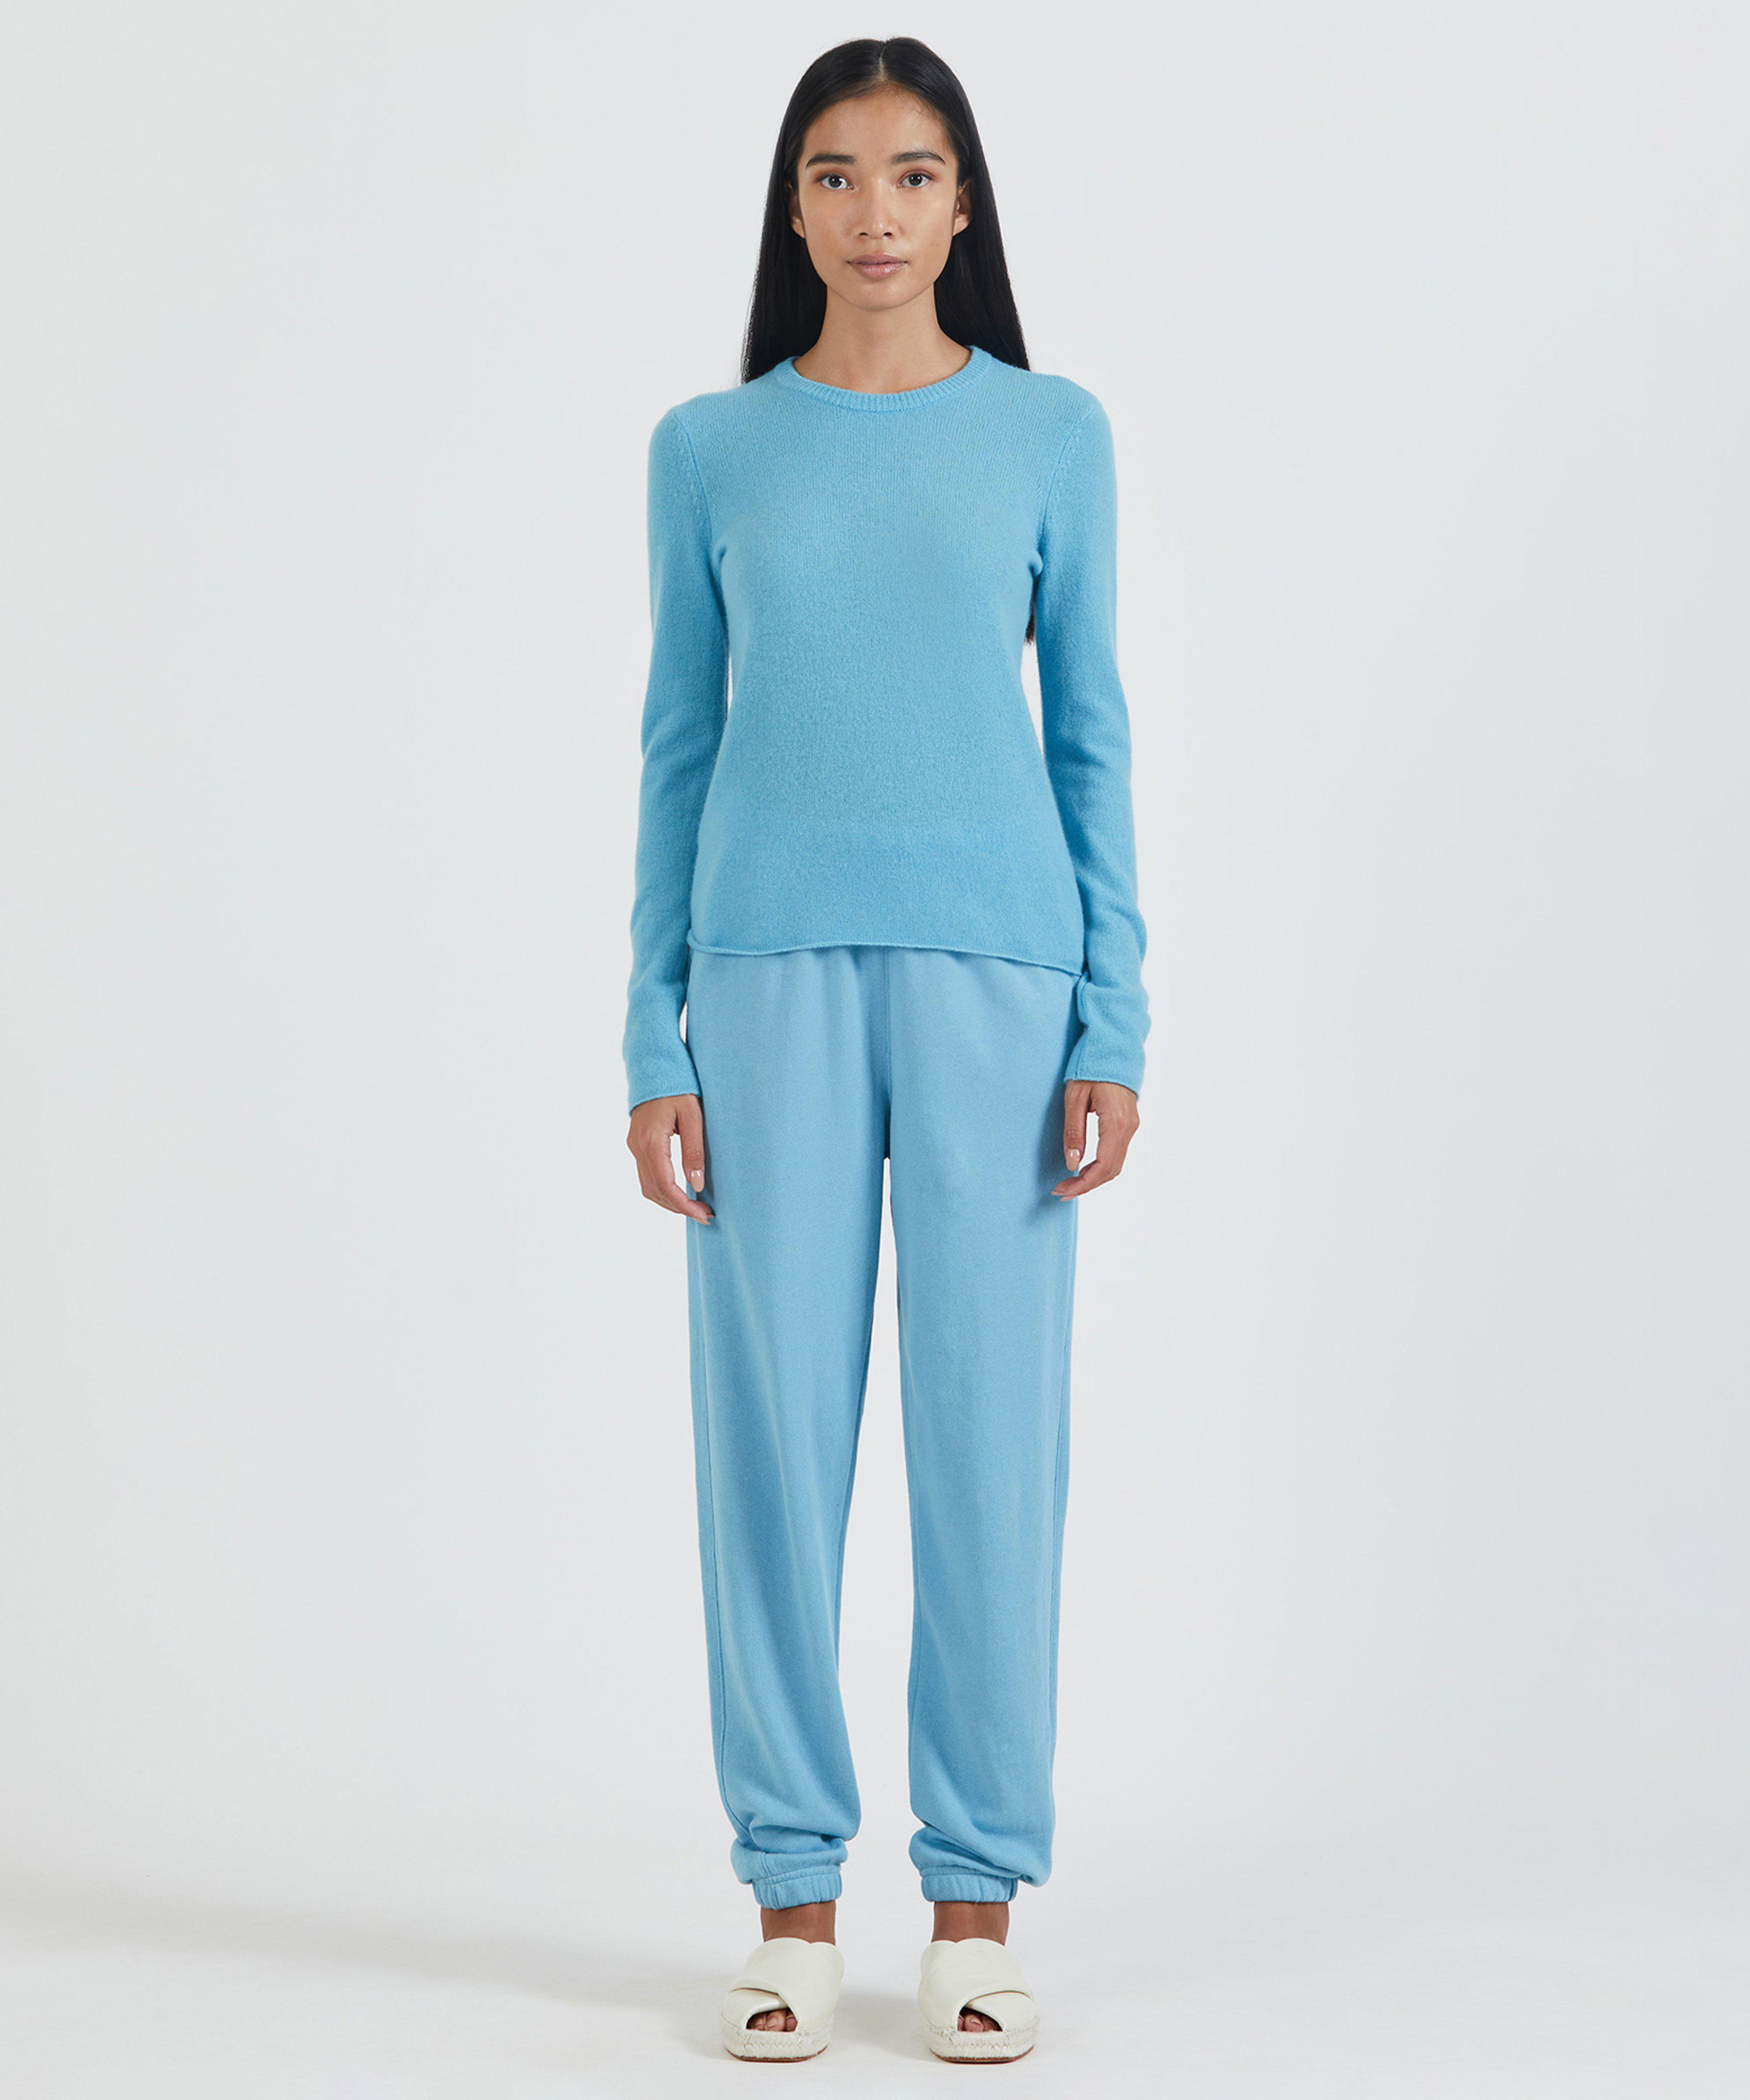 French Terry Pull-On Pant - Ocean Blue 4